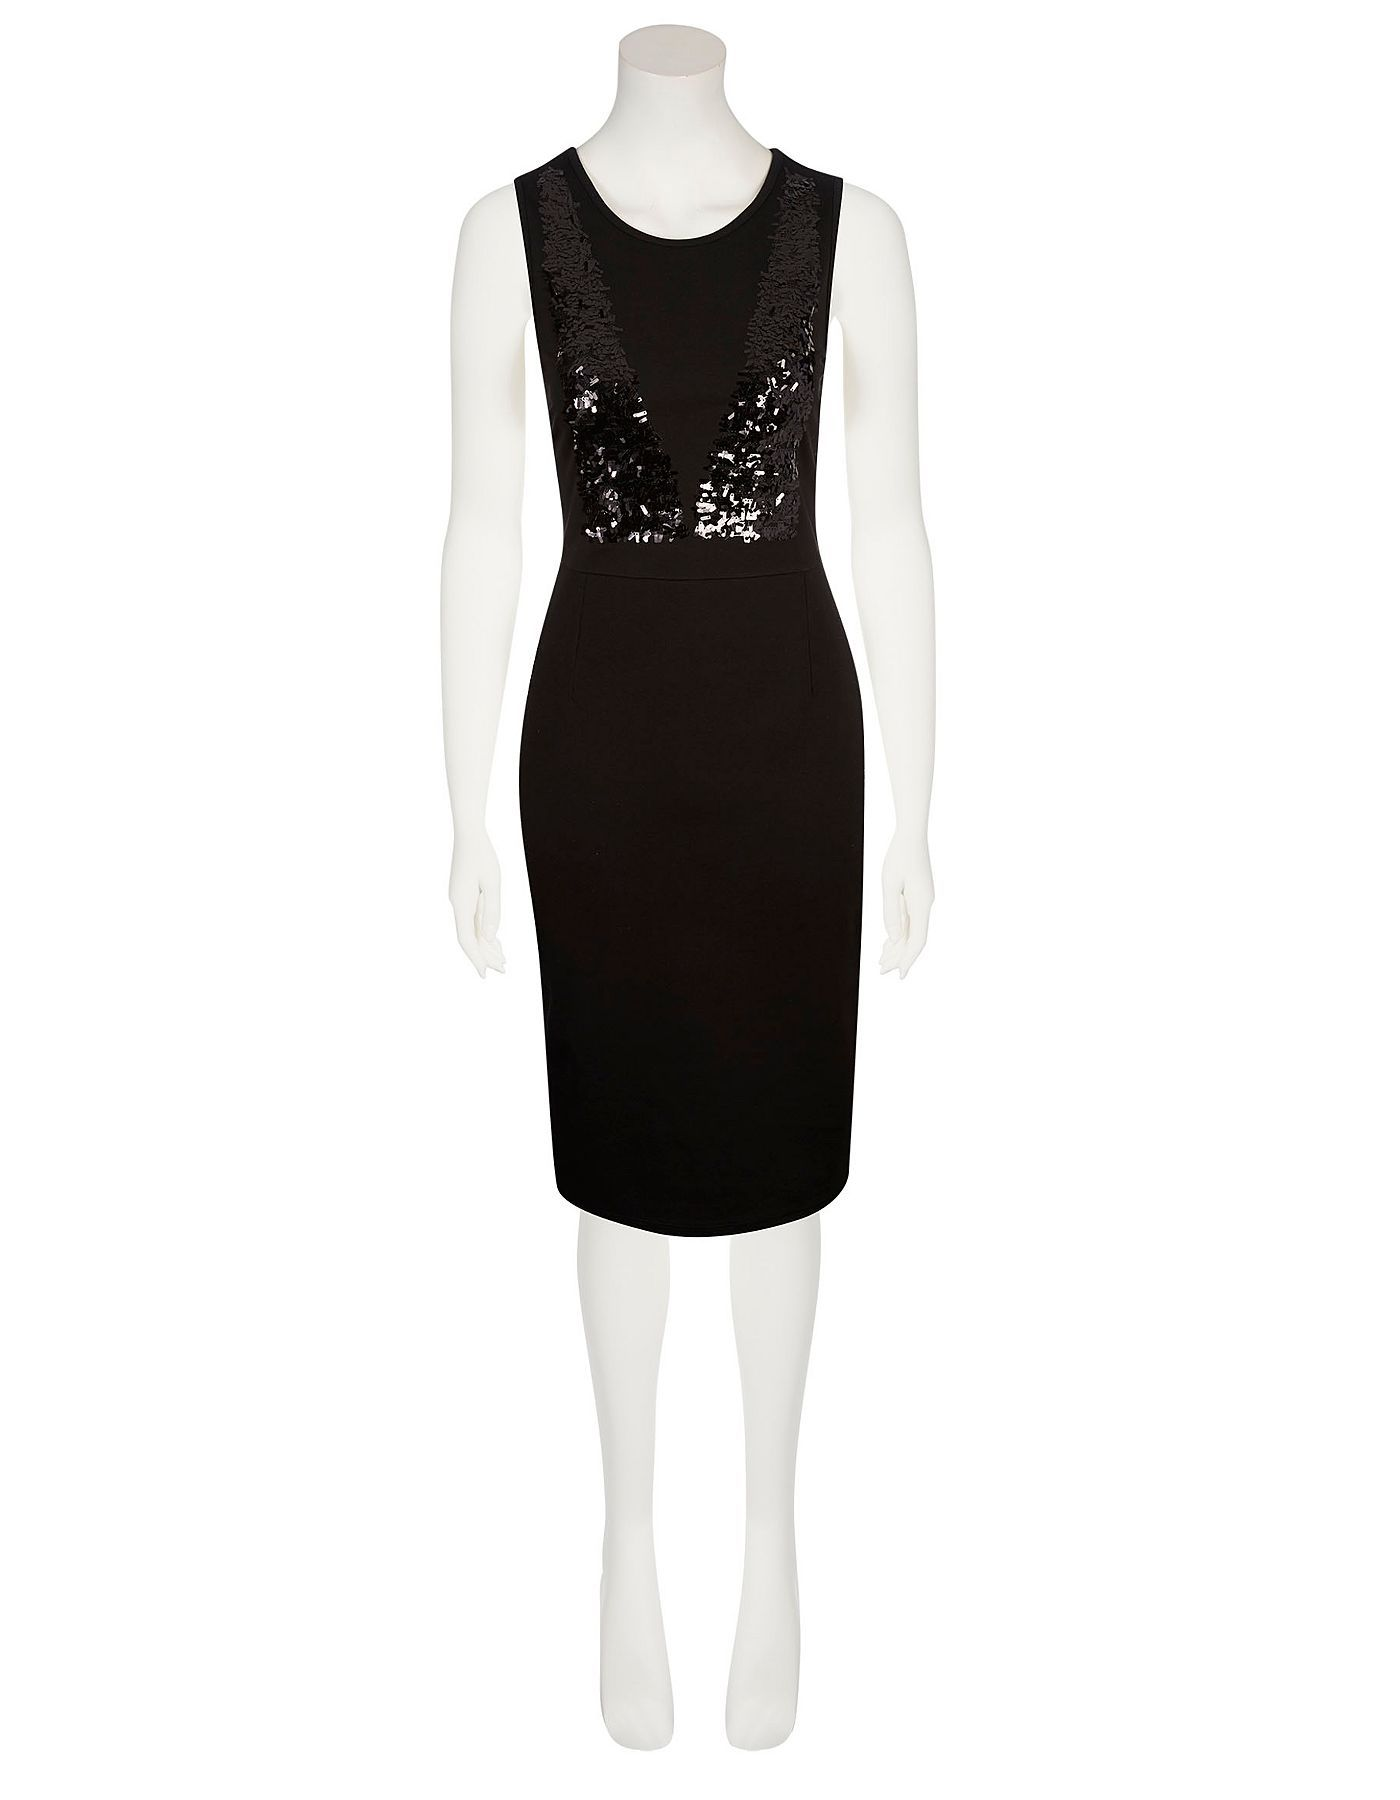 Moda Sequin Bodycon Dress Women George At Asda O My Plus Size